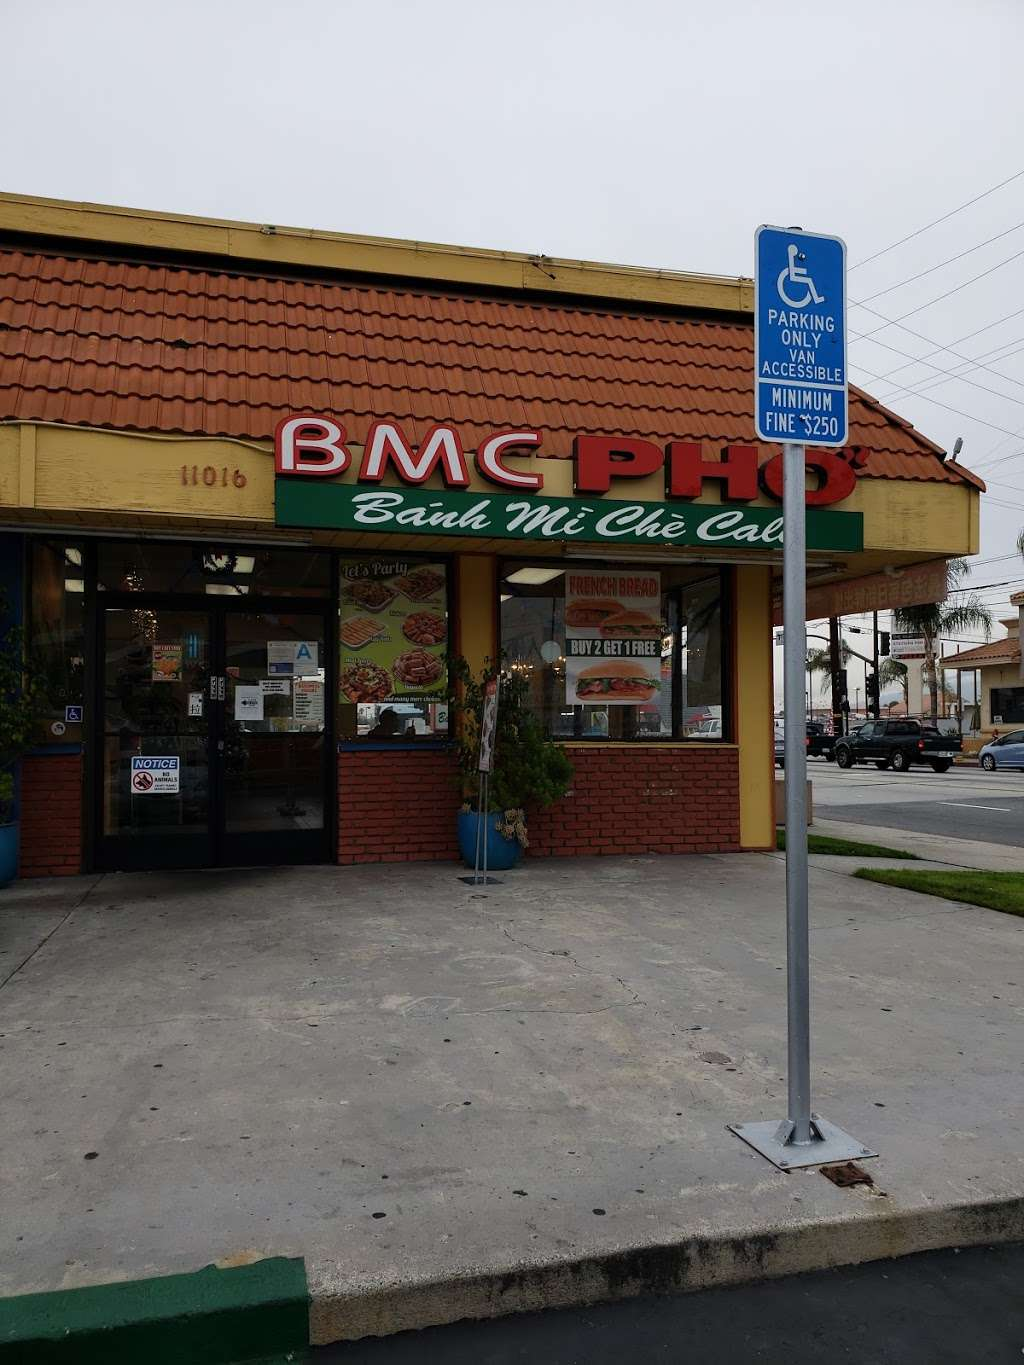 BMC - restaurant  | Photo 3 of 9 | Address: 11016 Lower Azusa Rd, El Monte, CA 91731, USA | Phone: (626) 416-5846